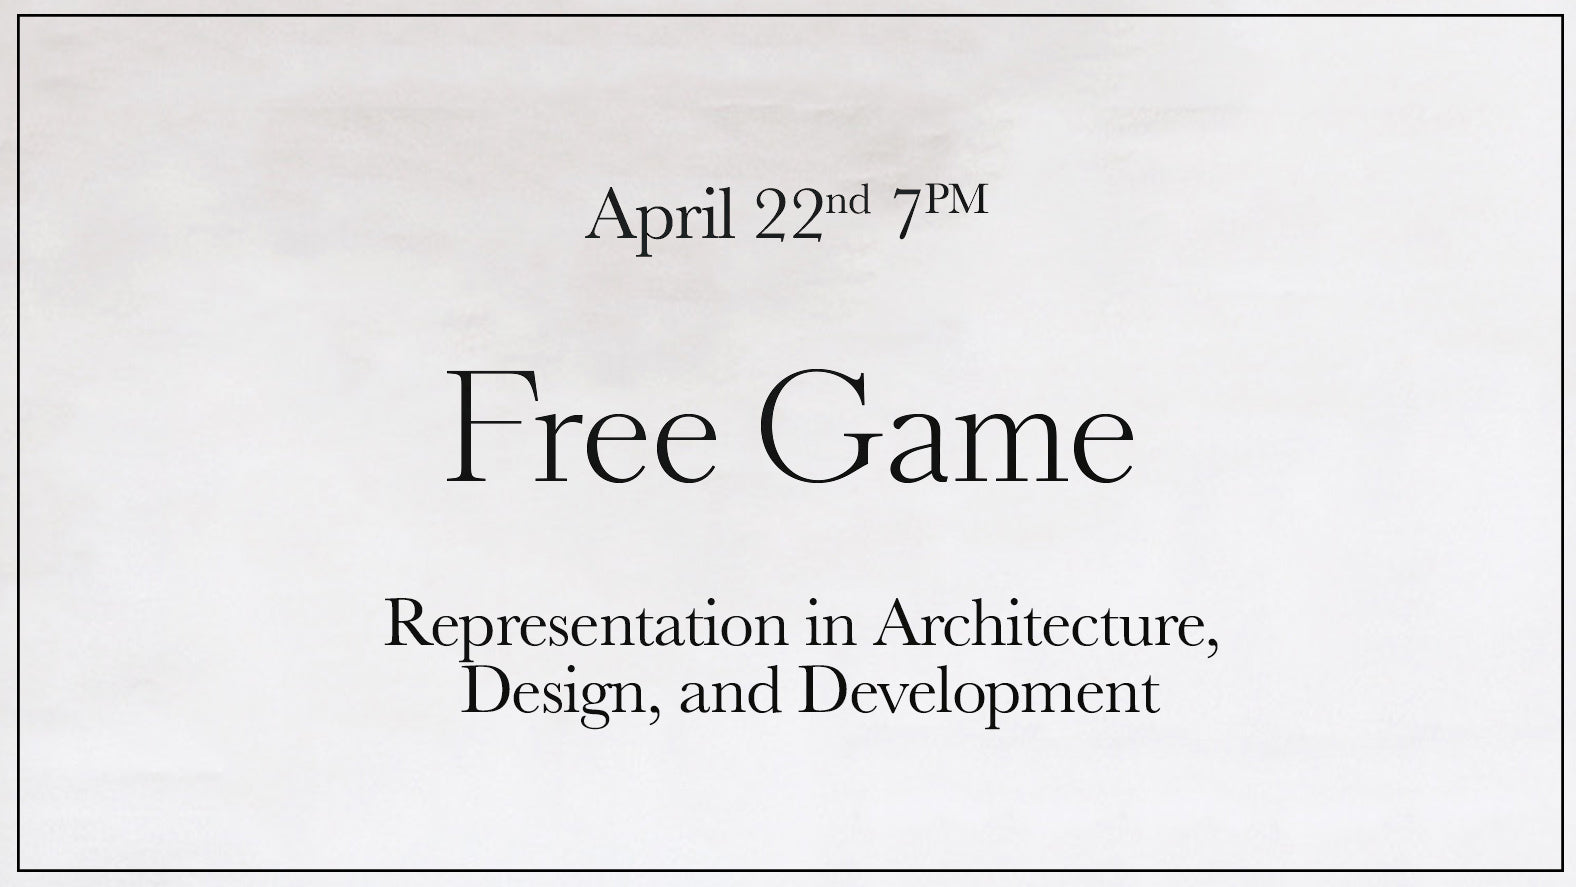 Free Game: Representation in Architecture, Design, and Development